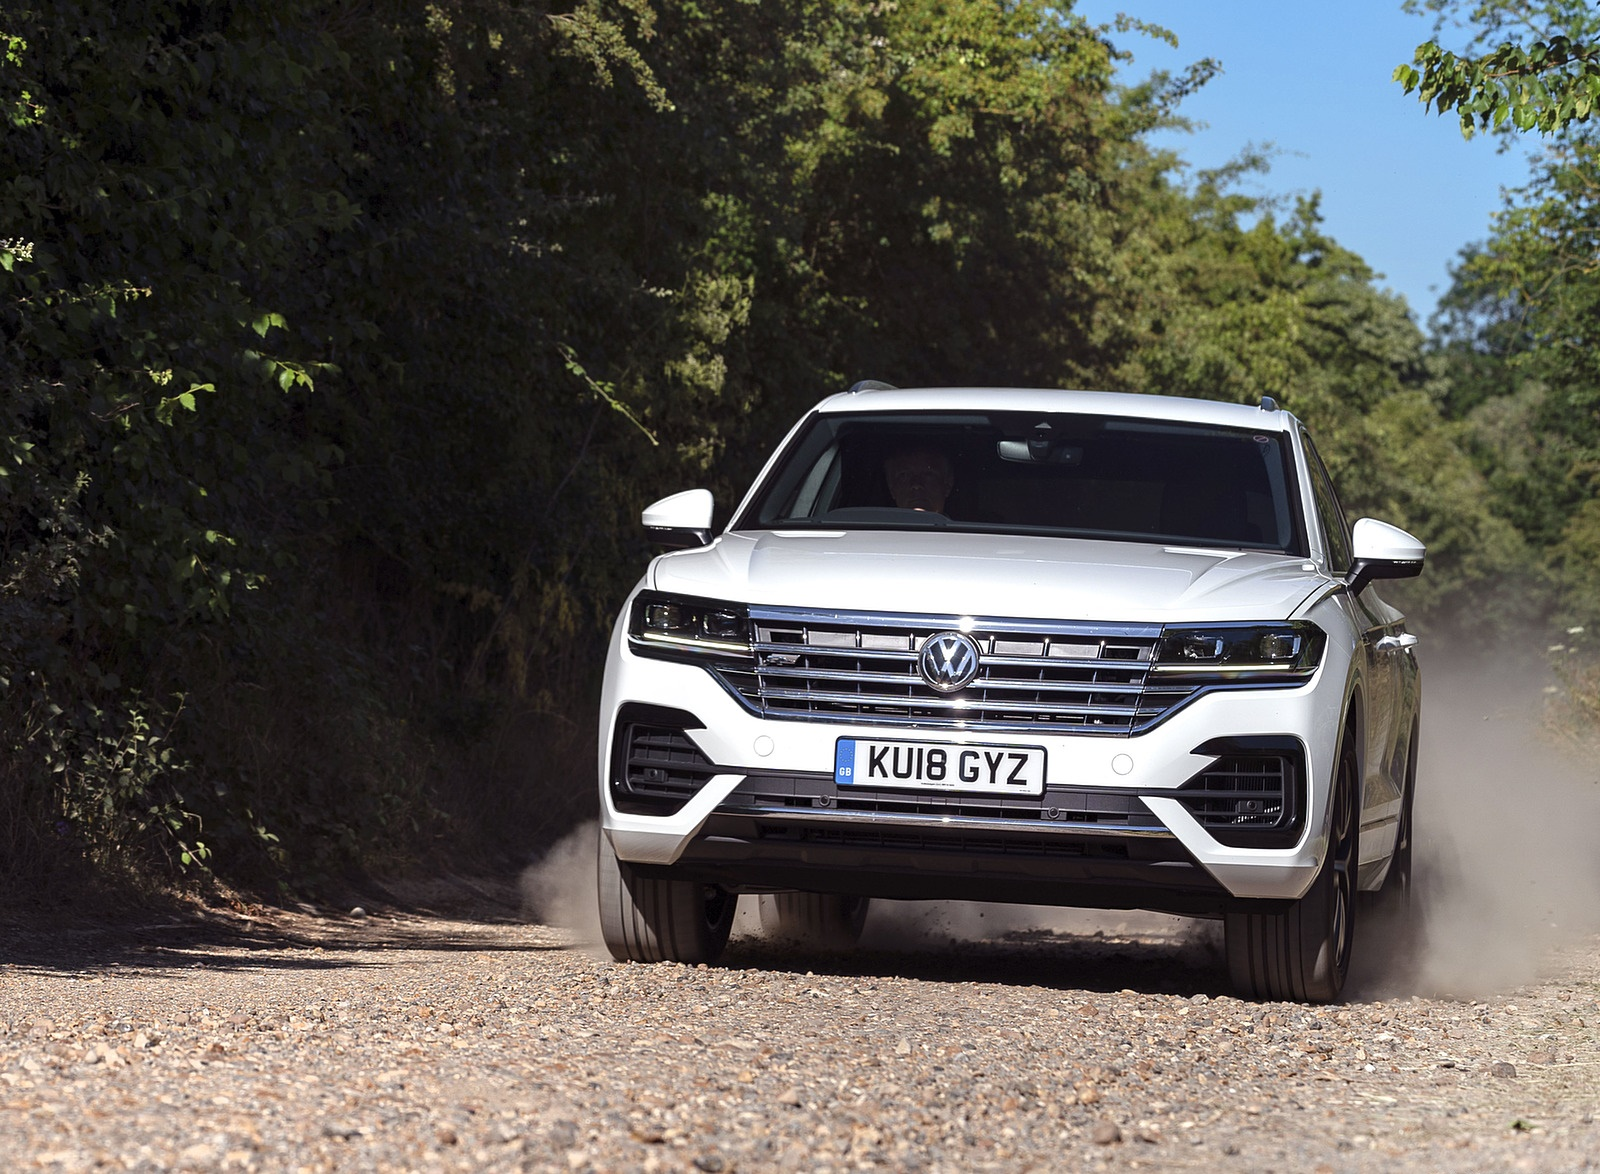 2019 Volkswagen Touareg V6 TDI R-Line (UK-Spec) Front Wallpapers (7)